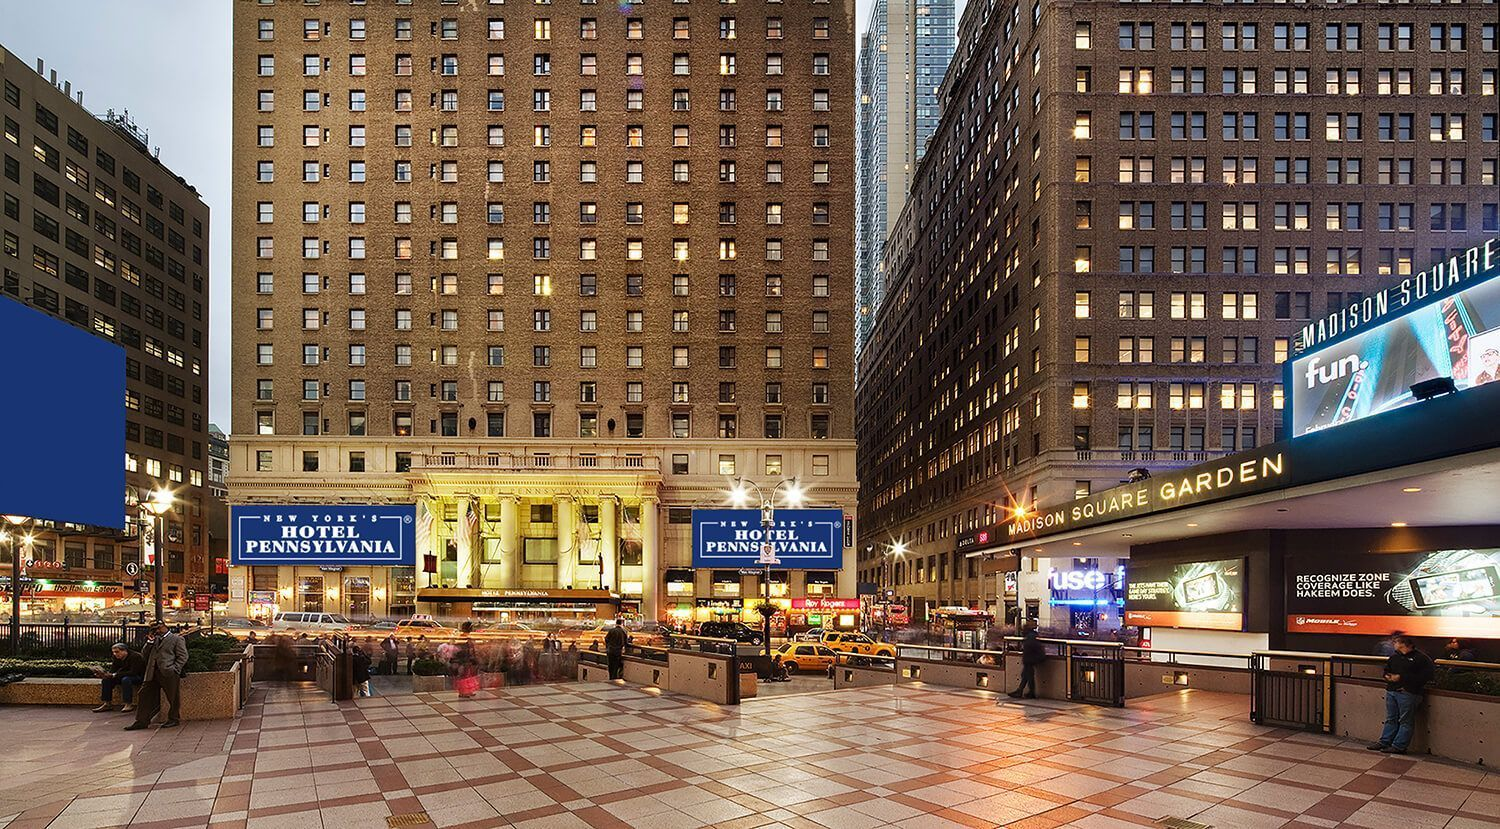 New York S Hotel Pennsylvania Is Located In The Heart Of Midtown